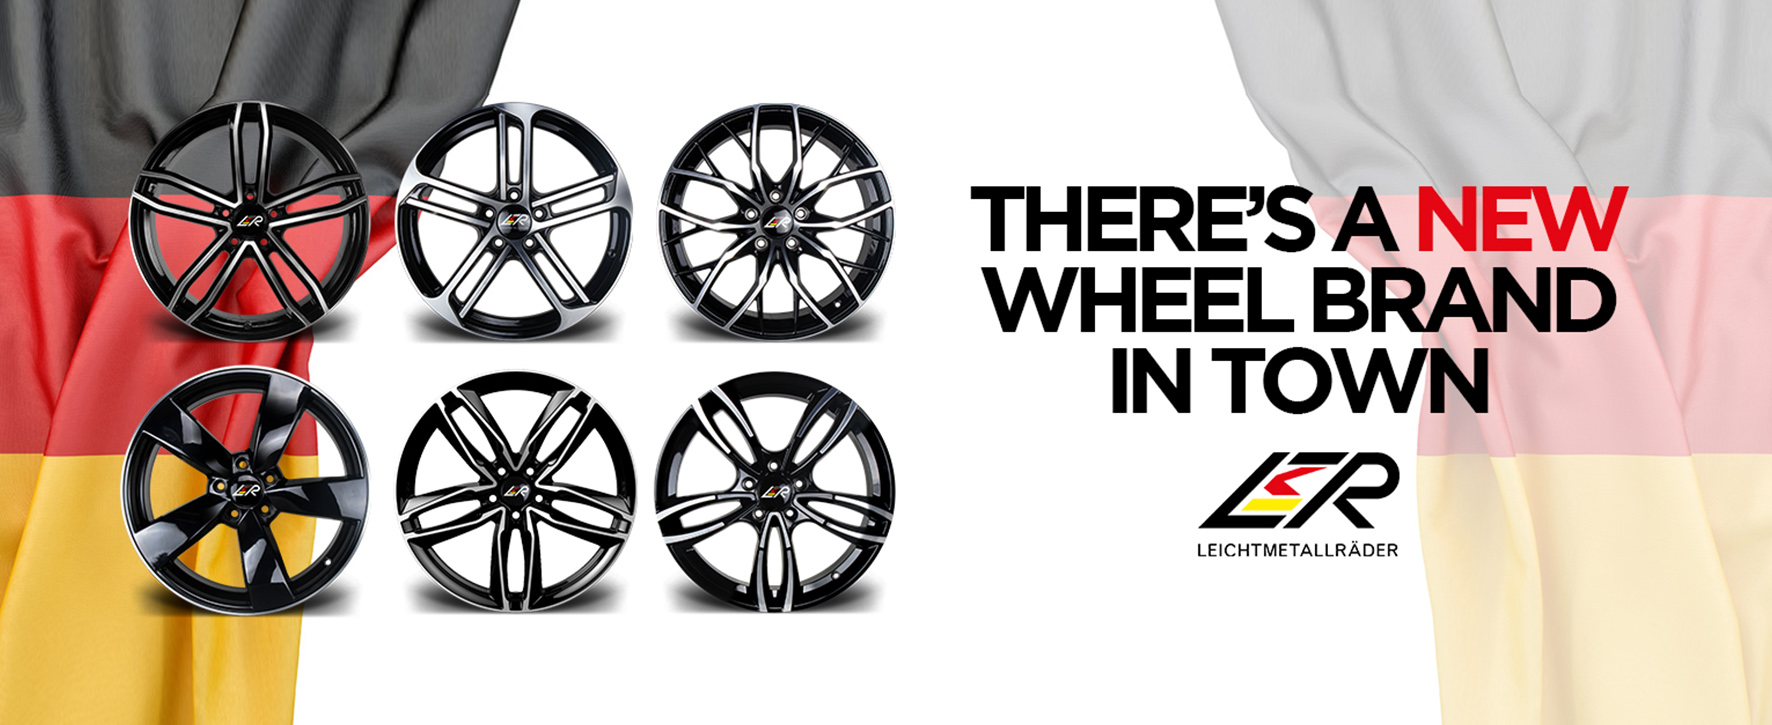 LMR alloy wheels